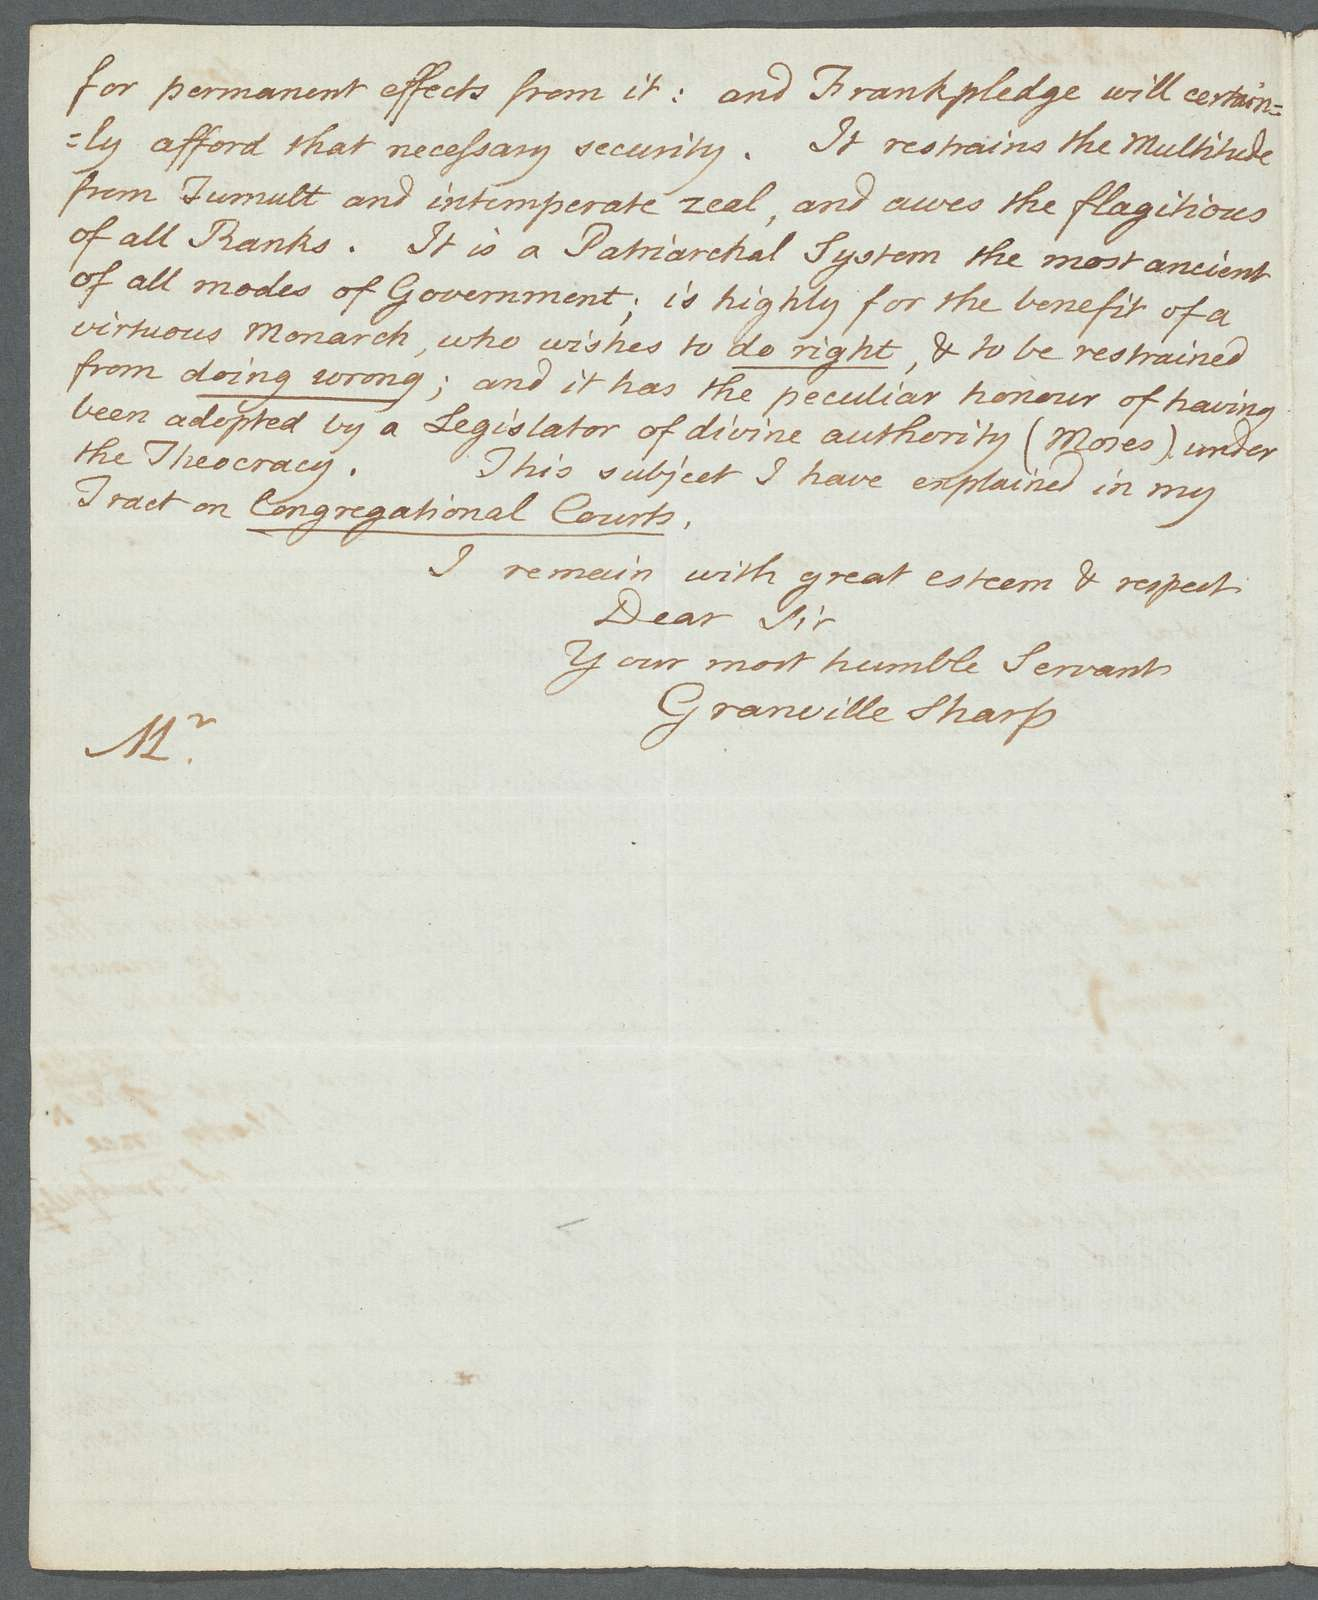 Two letters from Granville Sharp to Jacques-Pierre Brissot de Warville